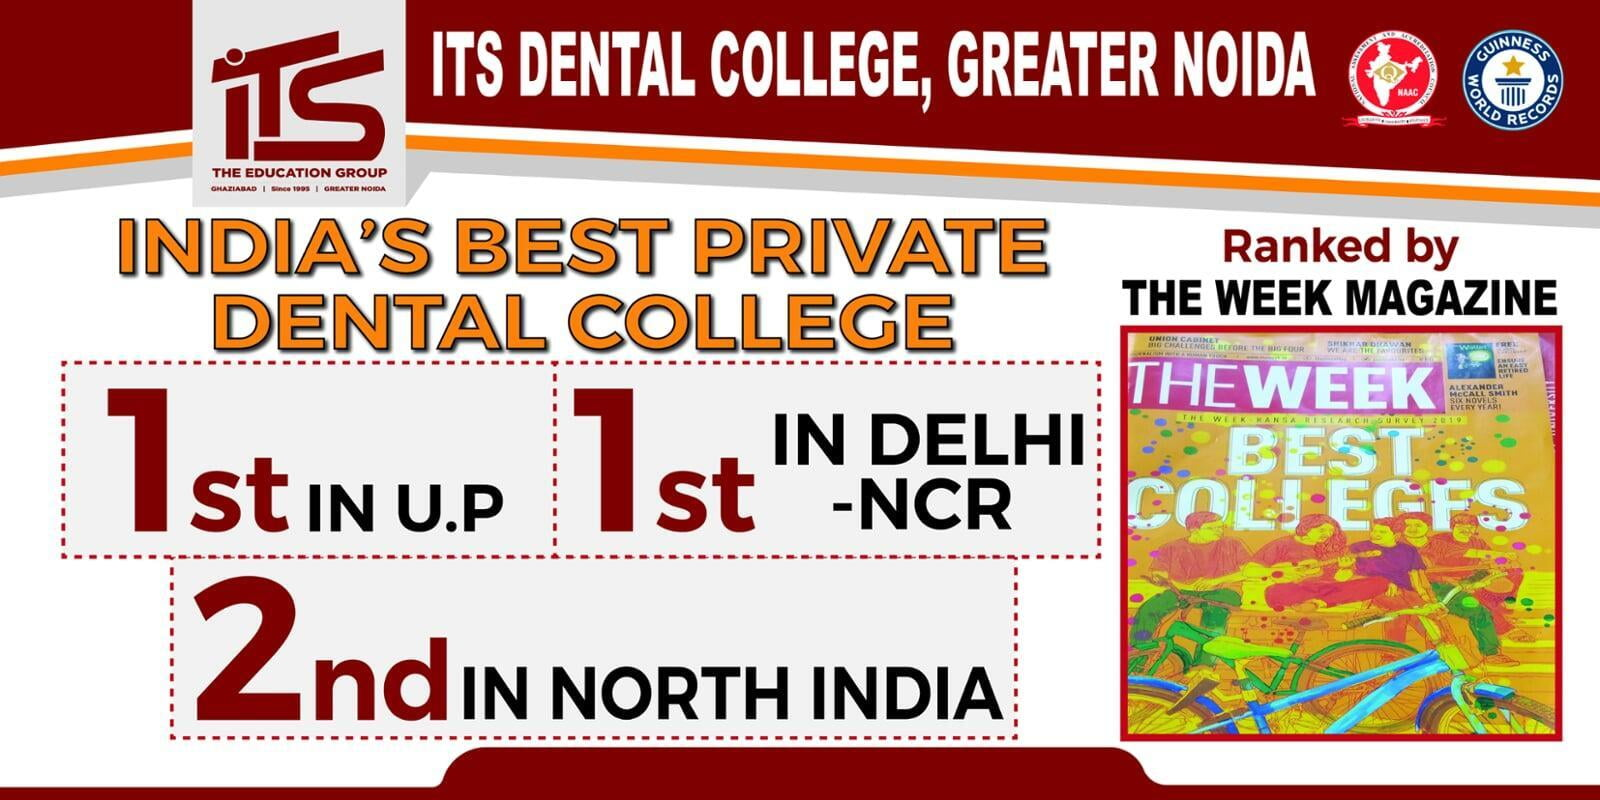 ITS DENTAL COLLEGE THE WEEK MAGAZINE